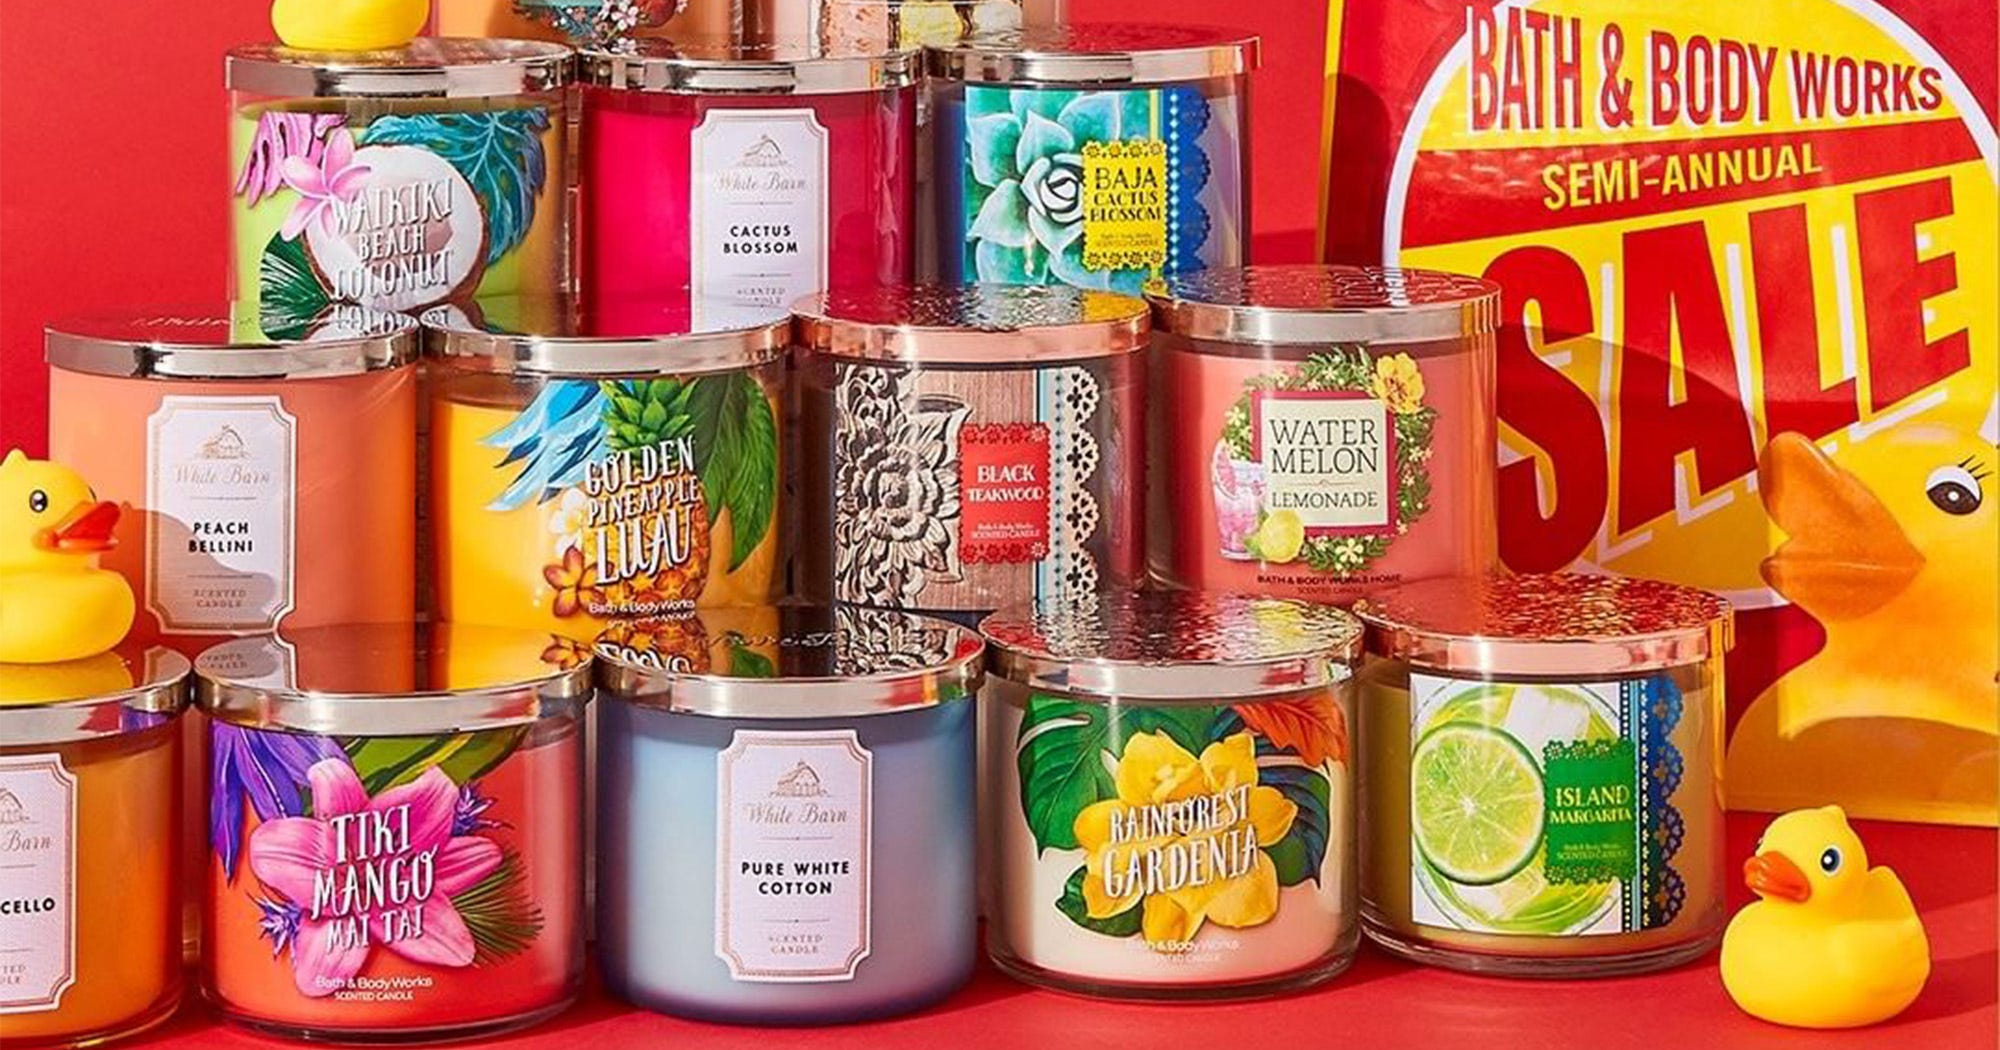 Bath & Body Works Semi Annual Sale Has Candles 50% Off